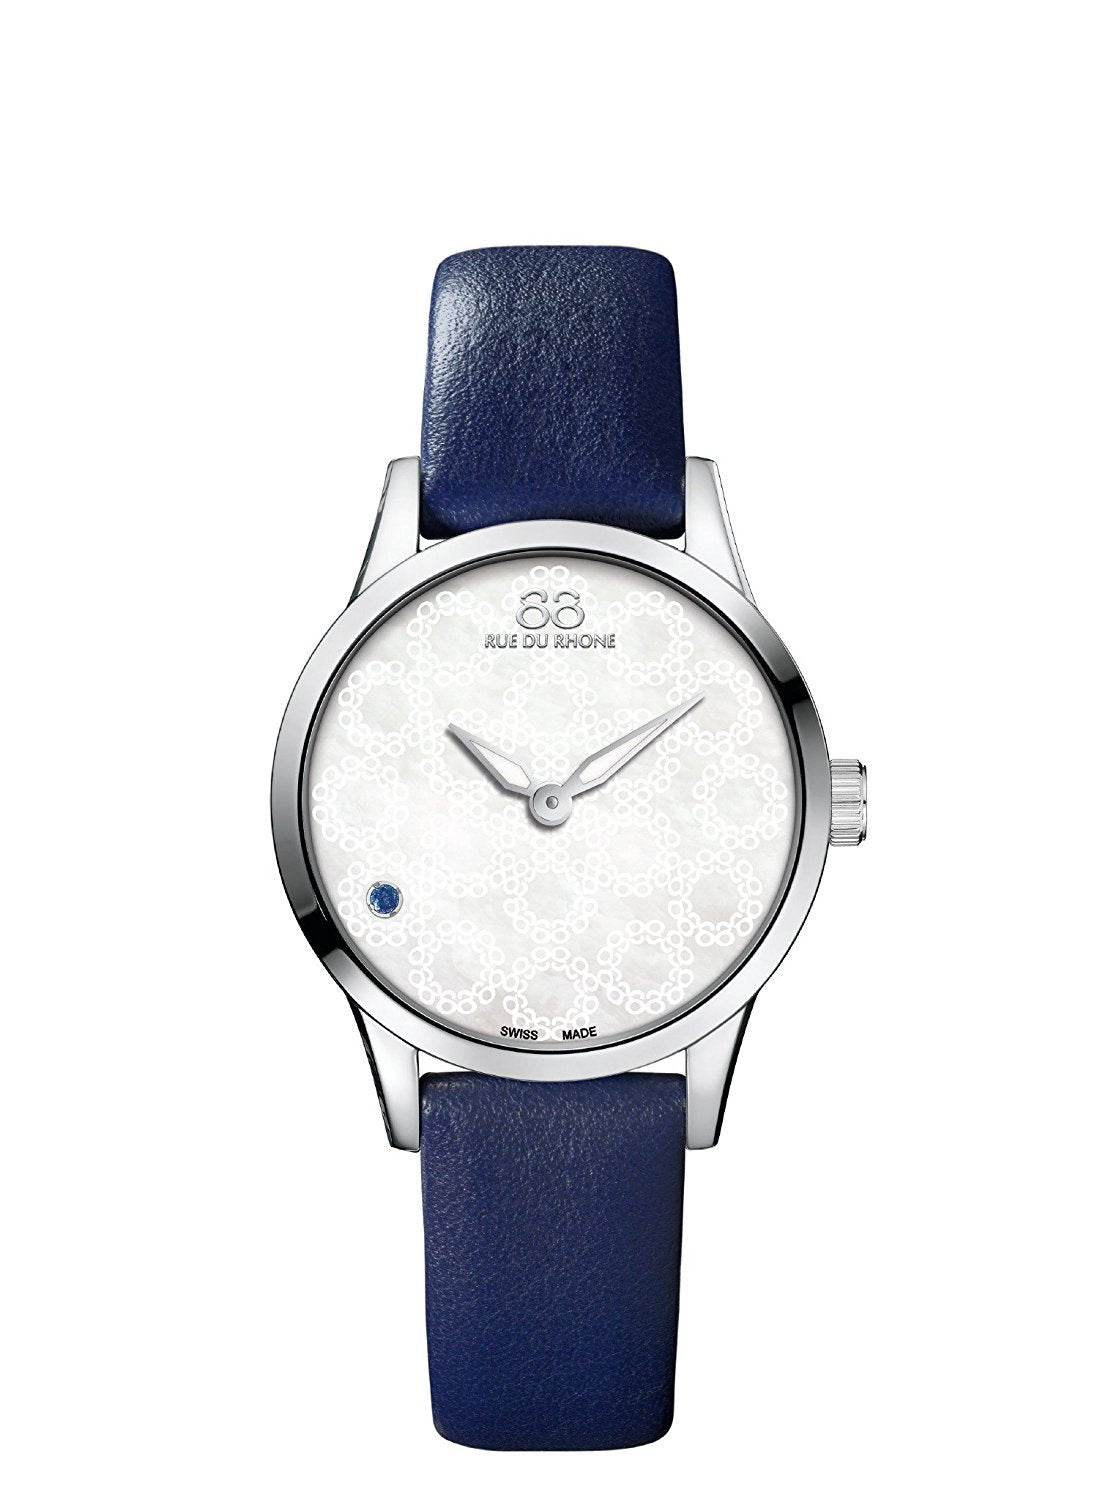 88 Rue du Rhone Swiss Quartz Watch Women 87WA163202 blue bracelet